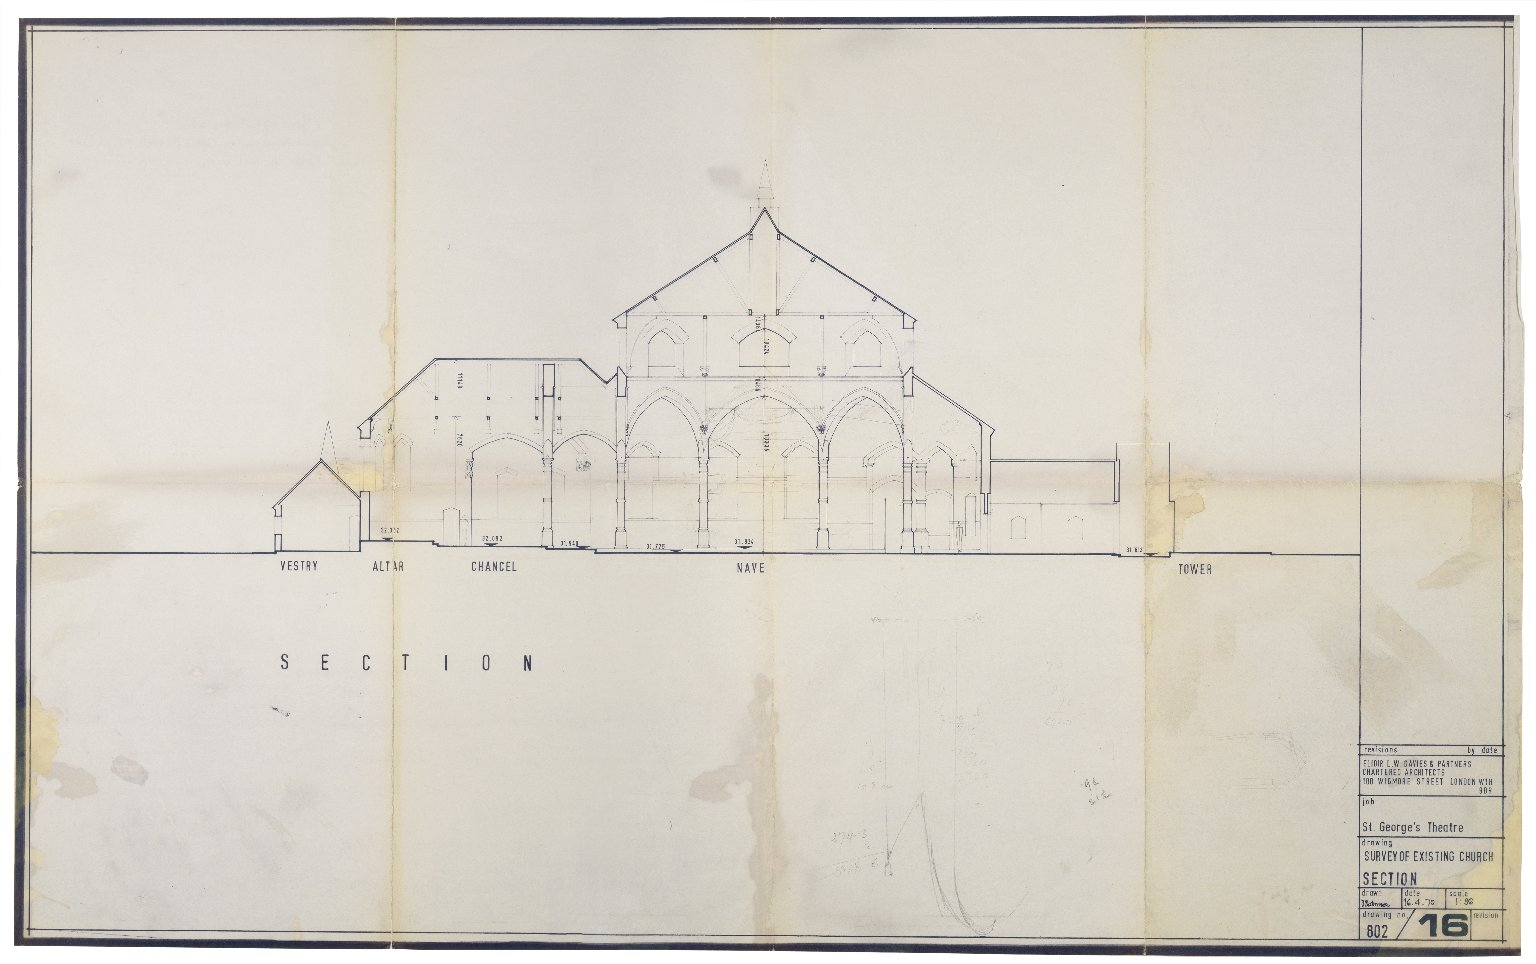 Survey of existing church (St. Georges), Apr. 1970, Davies & Partners (section)